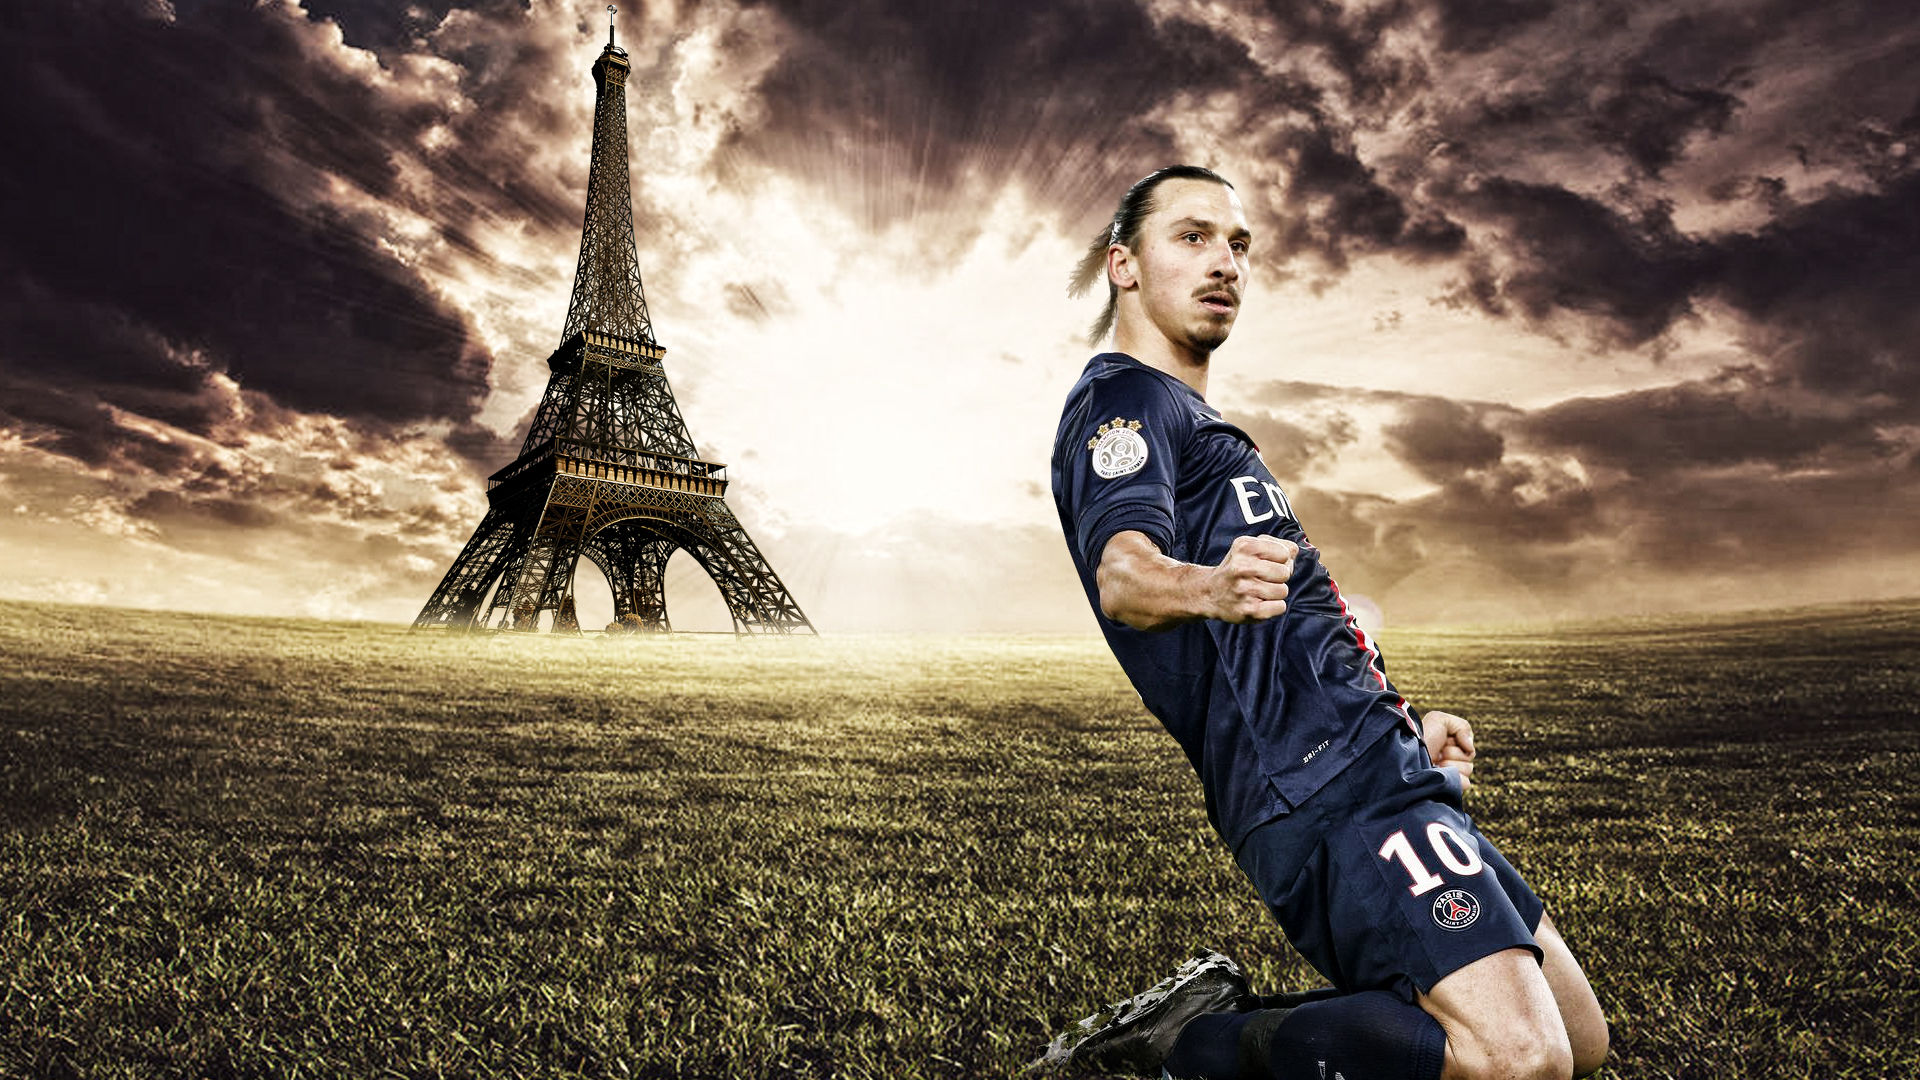 Zlatan Ibrahimovic Wallpaper Hd